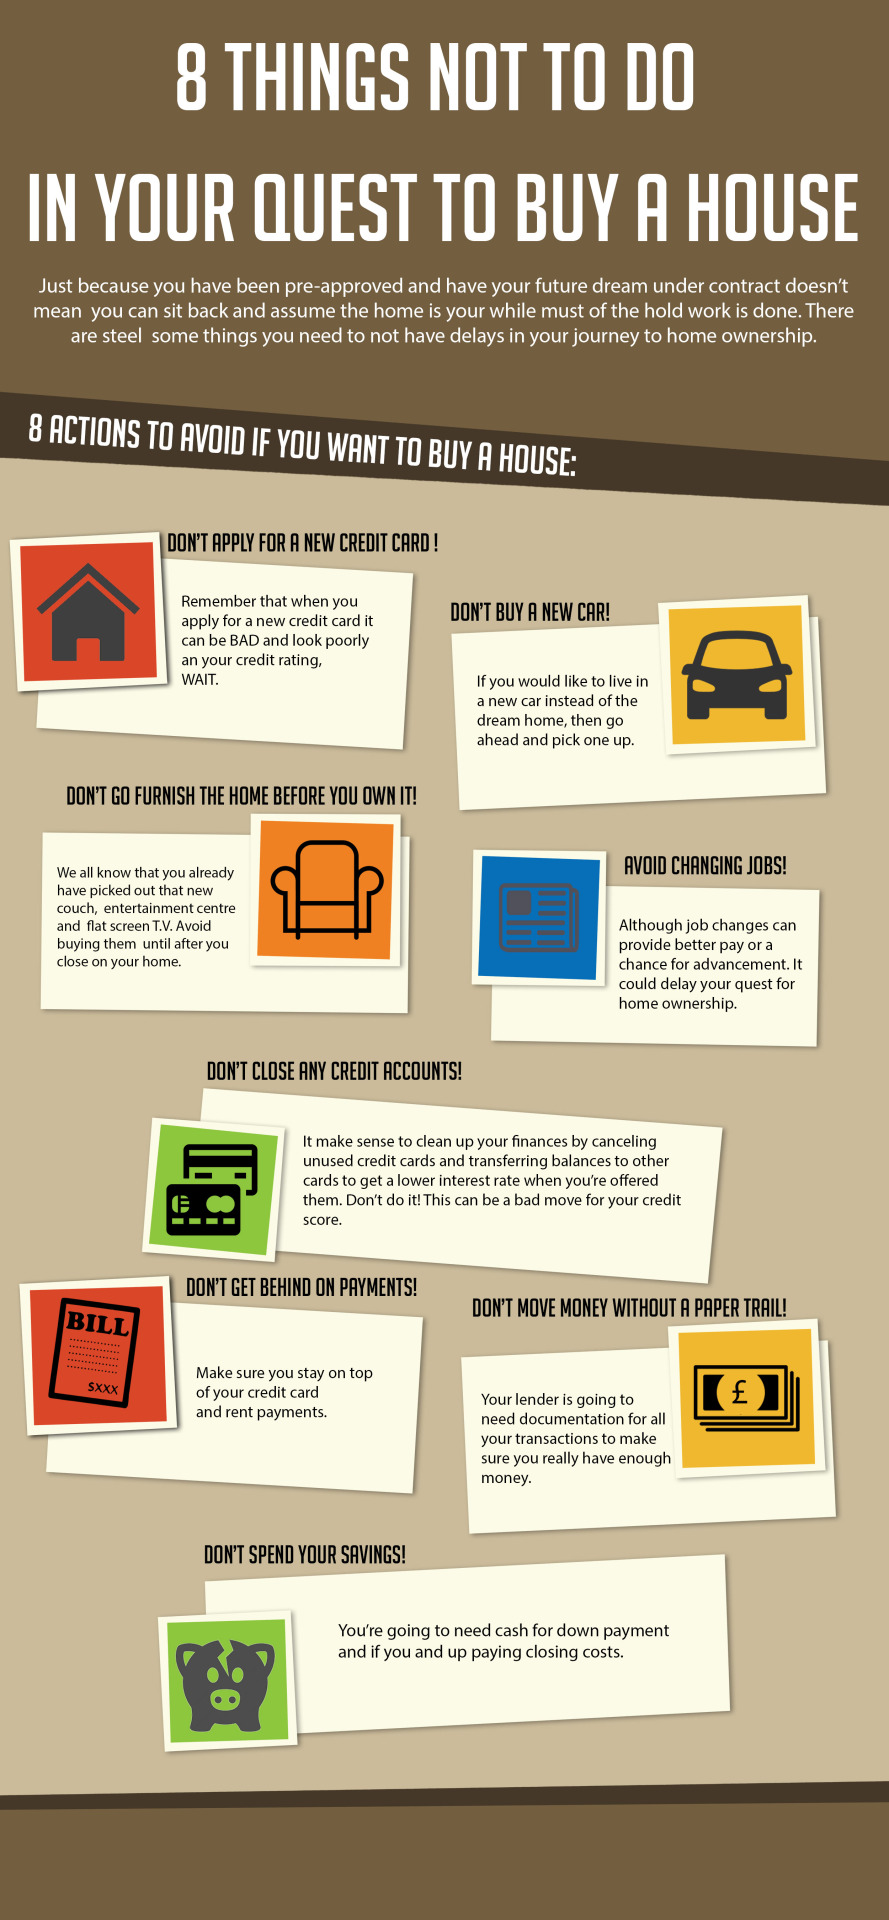 8 Things Not To Do In Your Quest To Buy A House